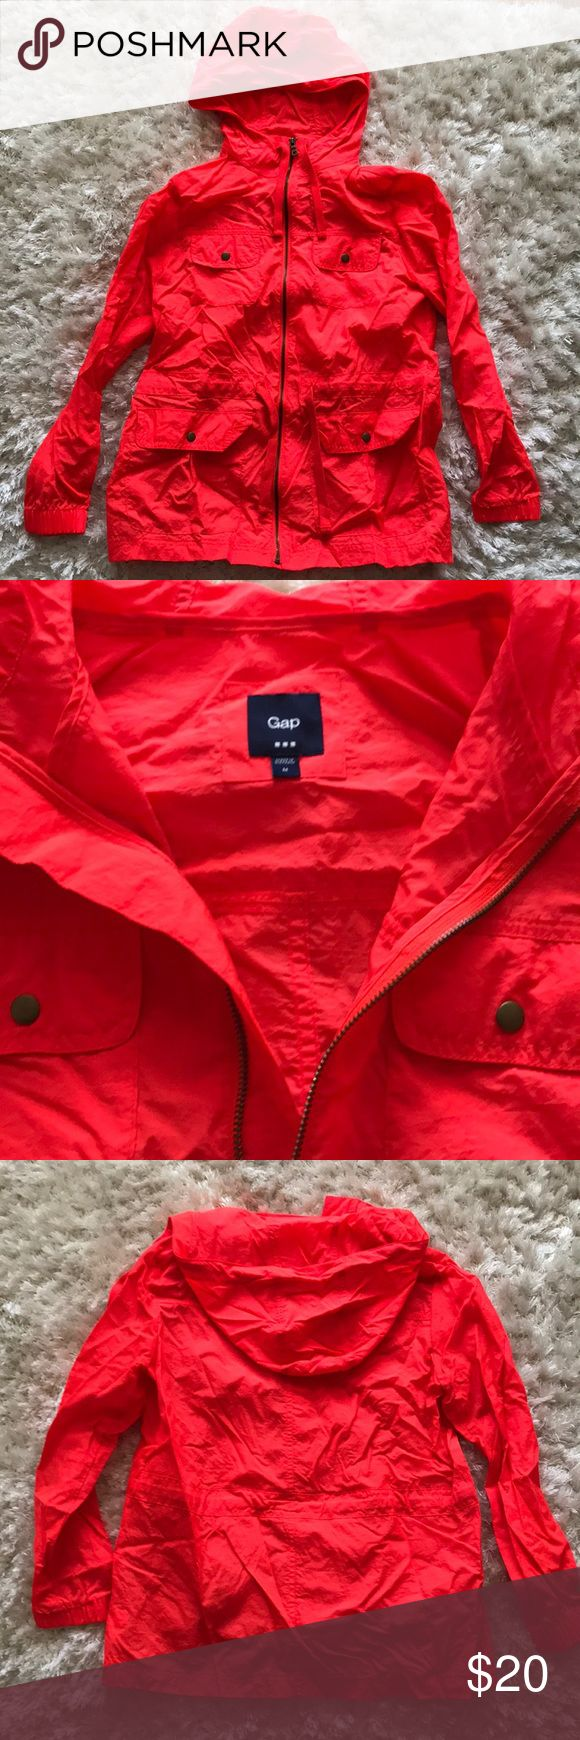 Orange Gap Rain Jacket Size M This is a great layering piece in the spring. Wonderful for Raton and wind. GAP Jackets & Coats Utility Jackets